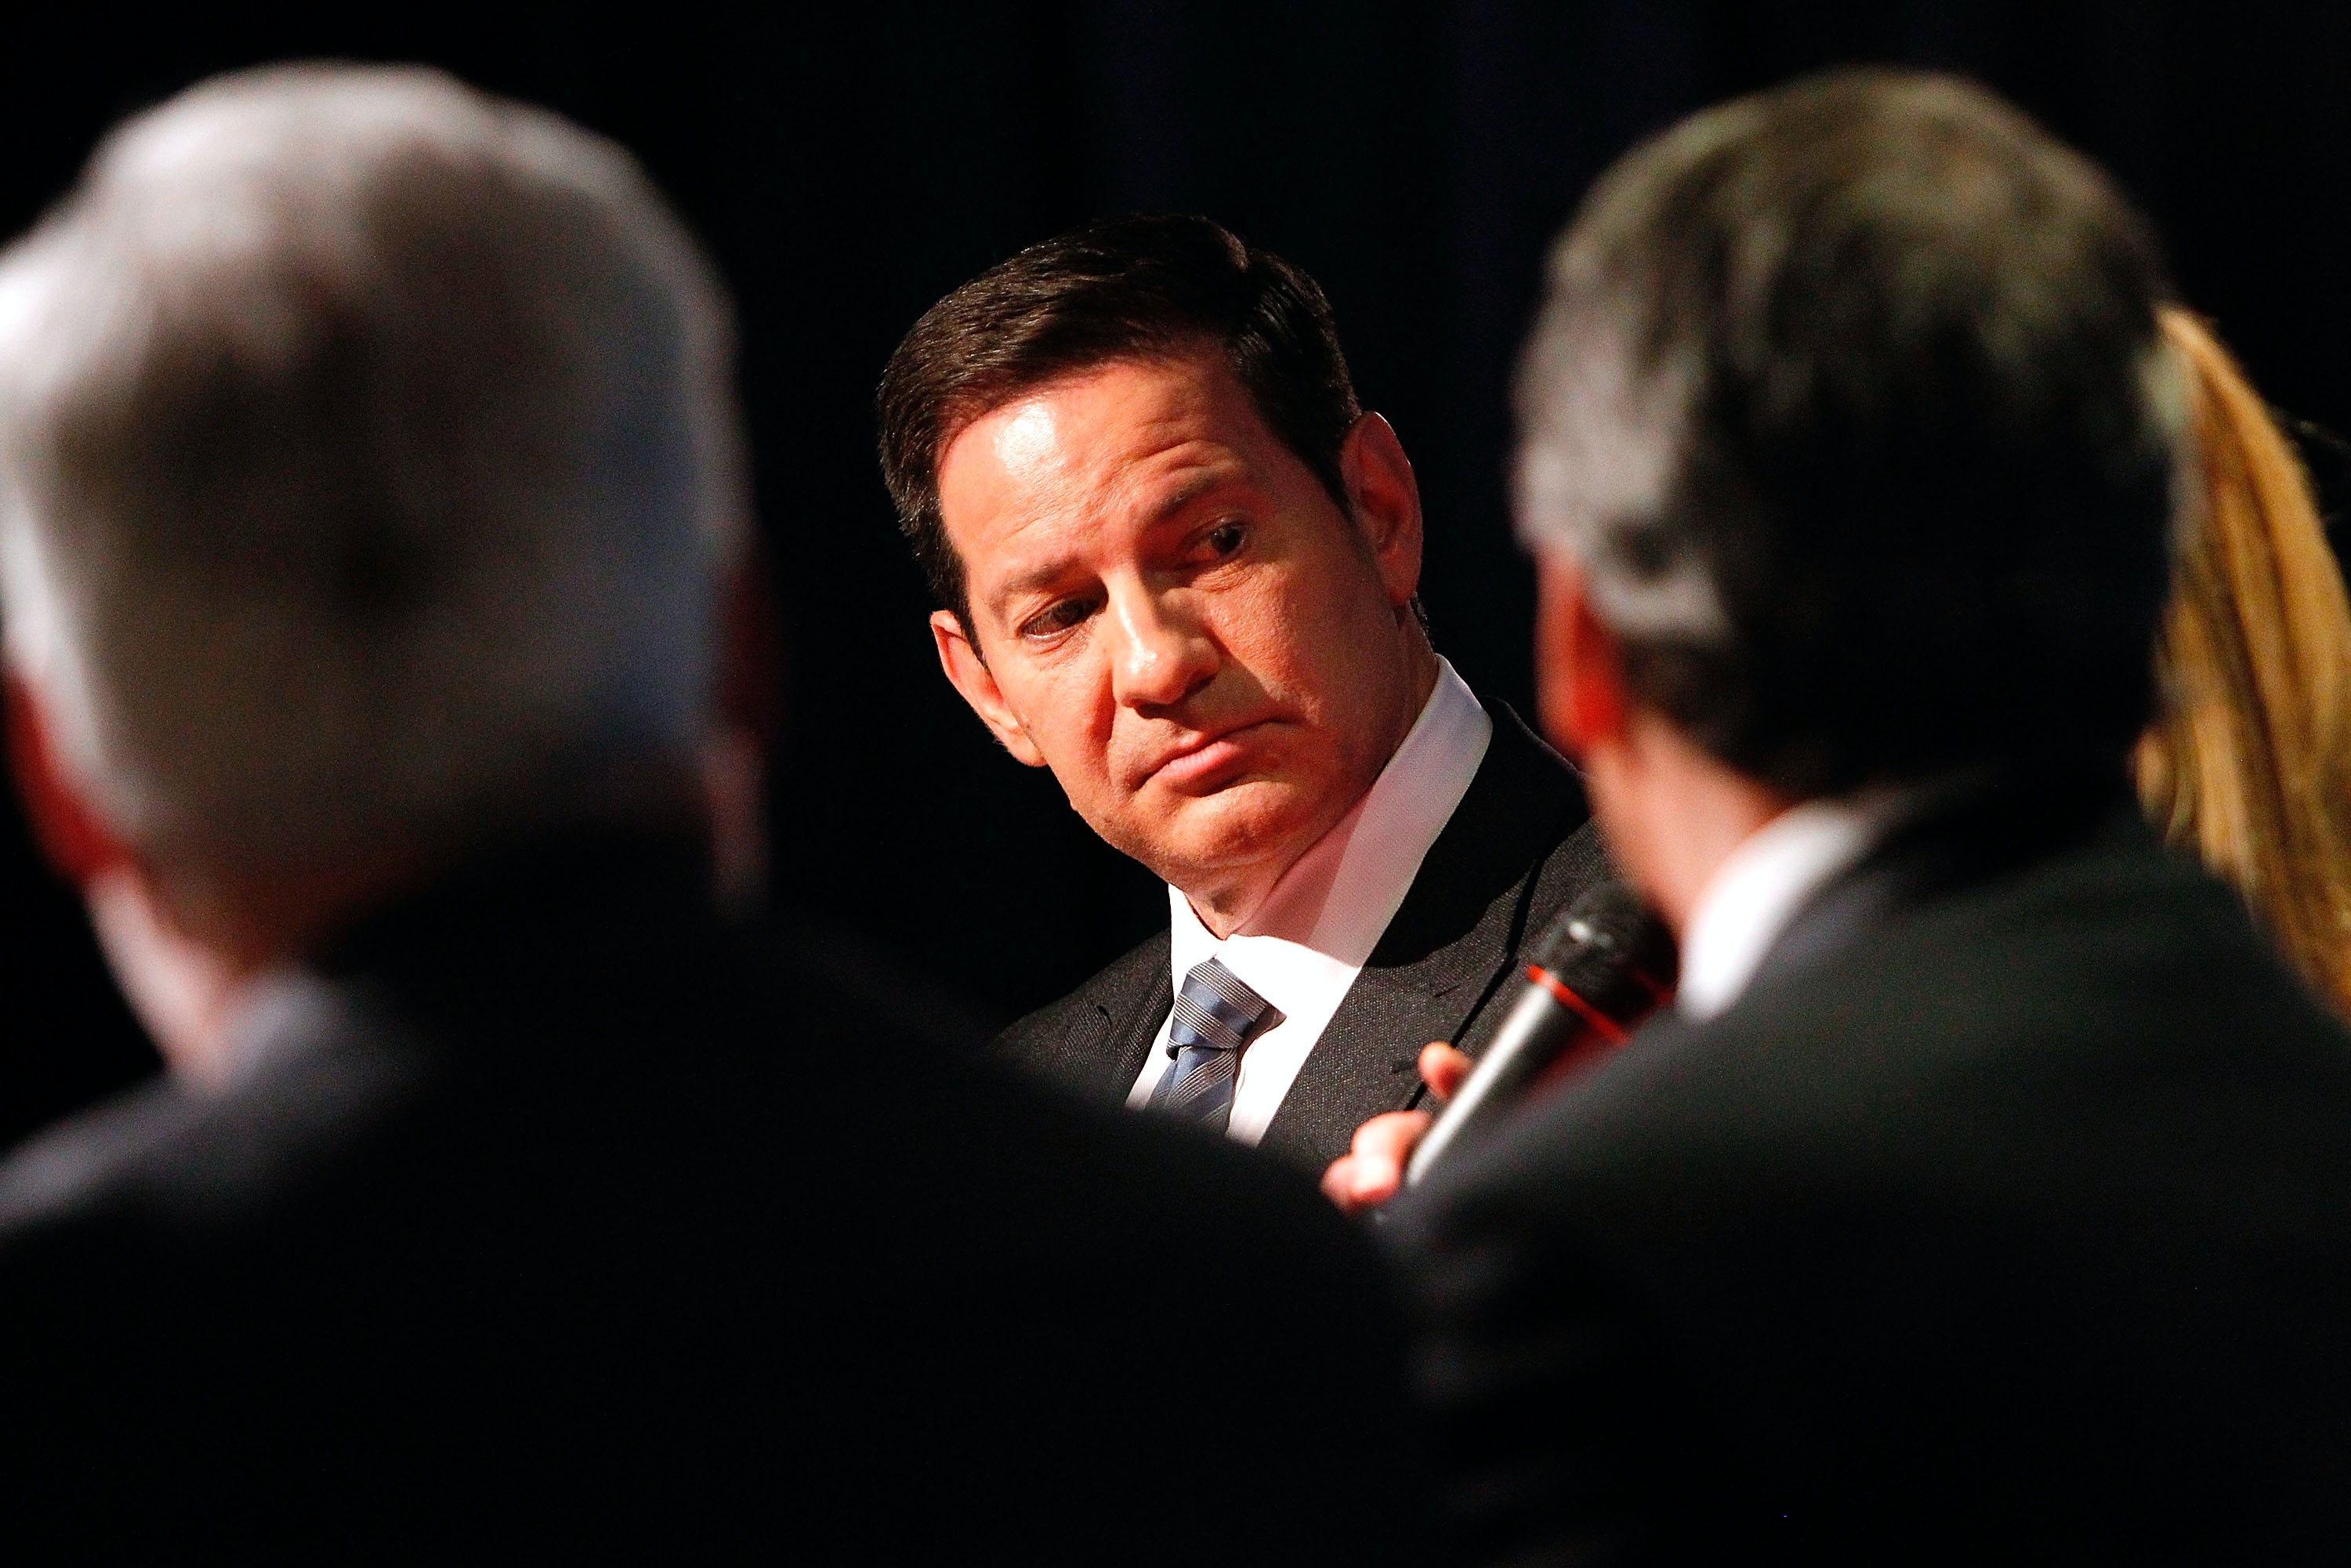 Veteran Political Journalist Mark Halperin Accused Of Sexual Harassment By Five Women